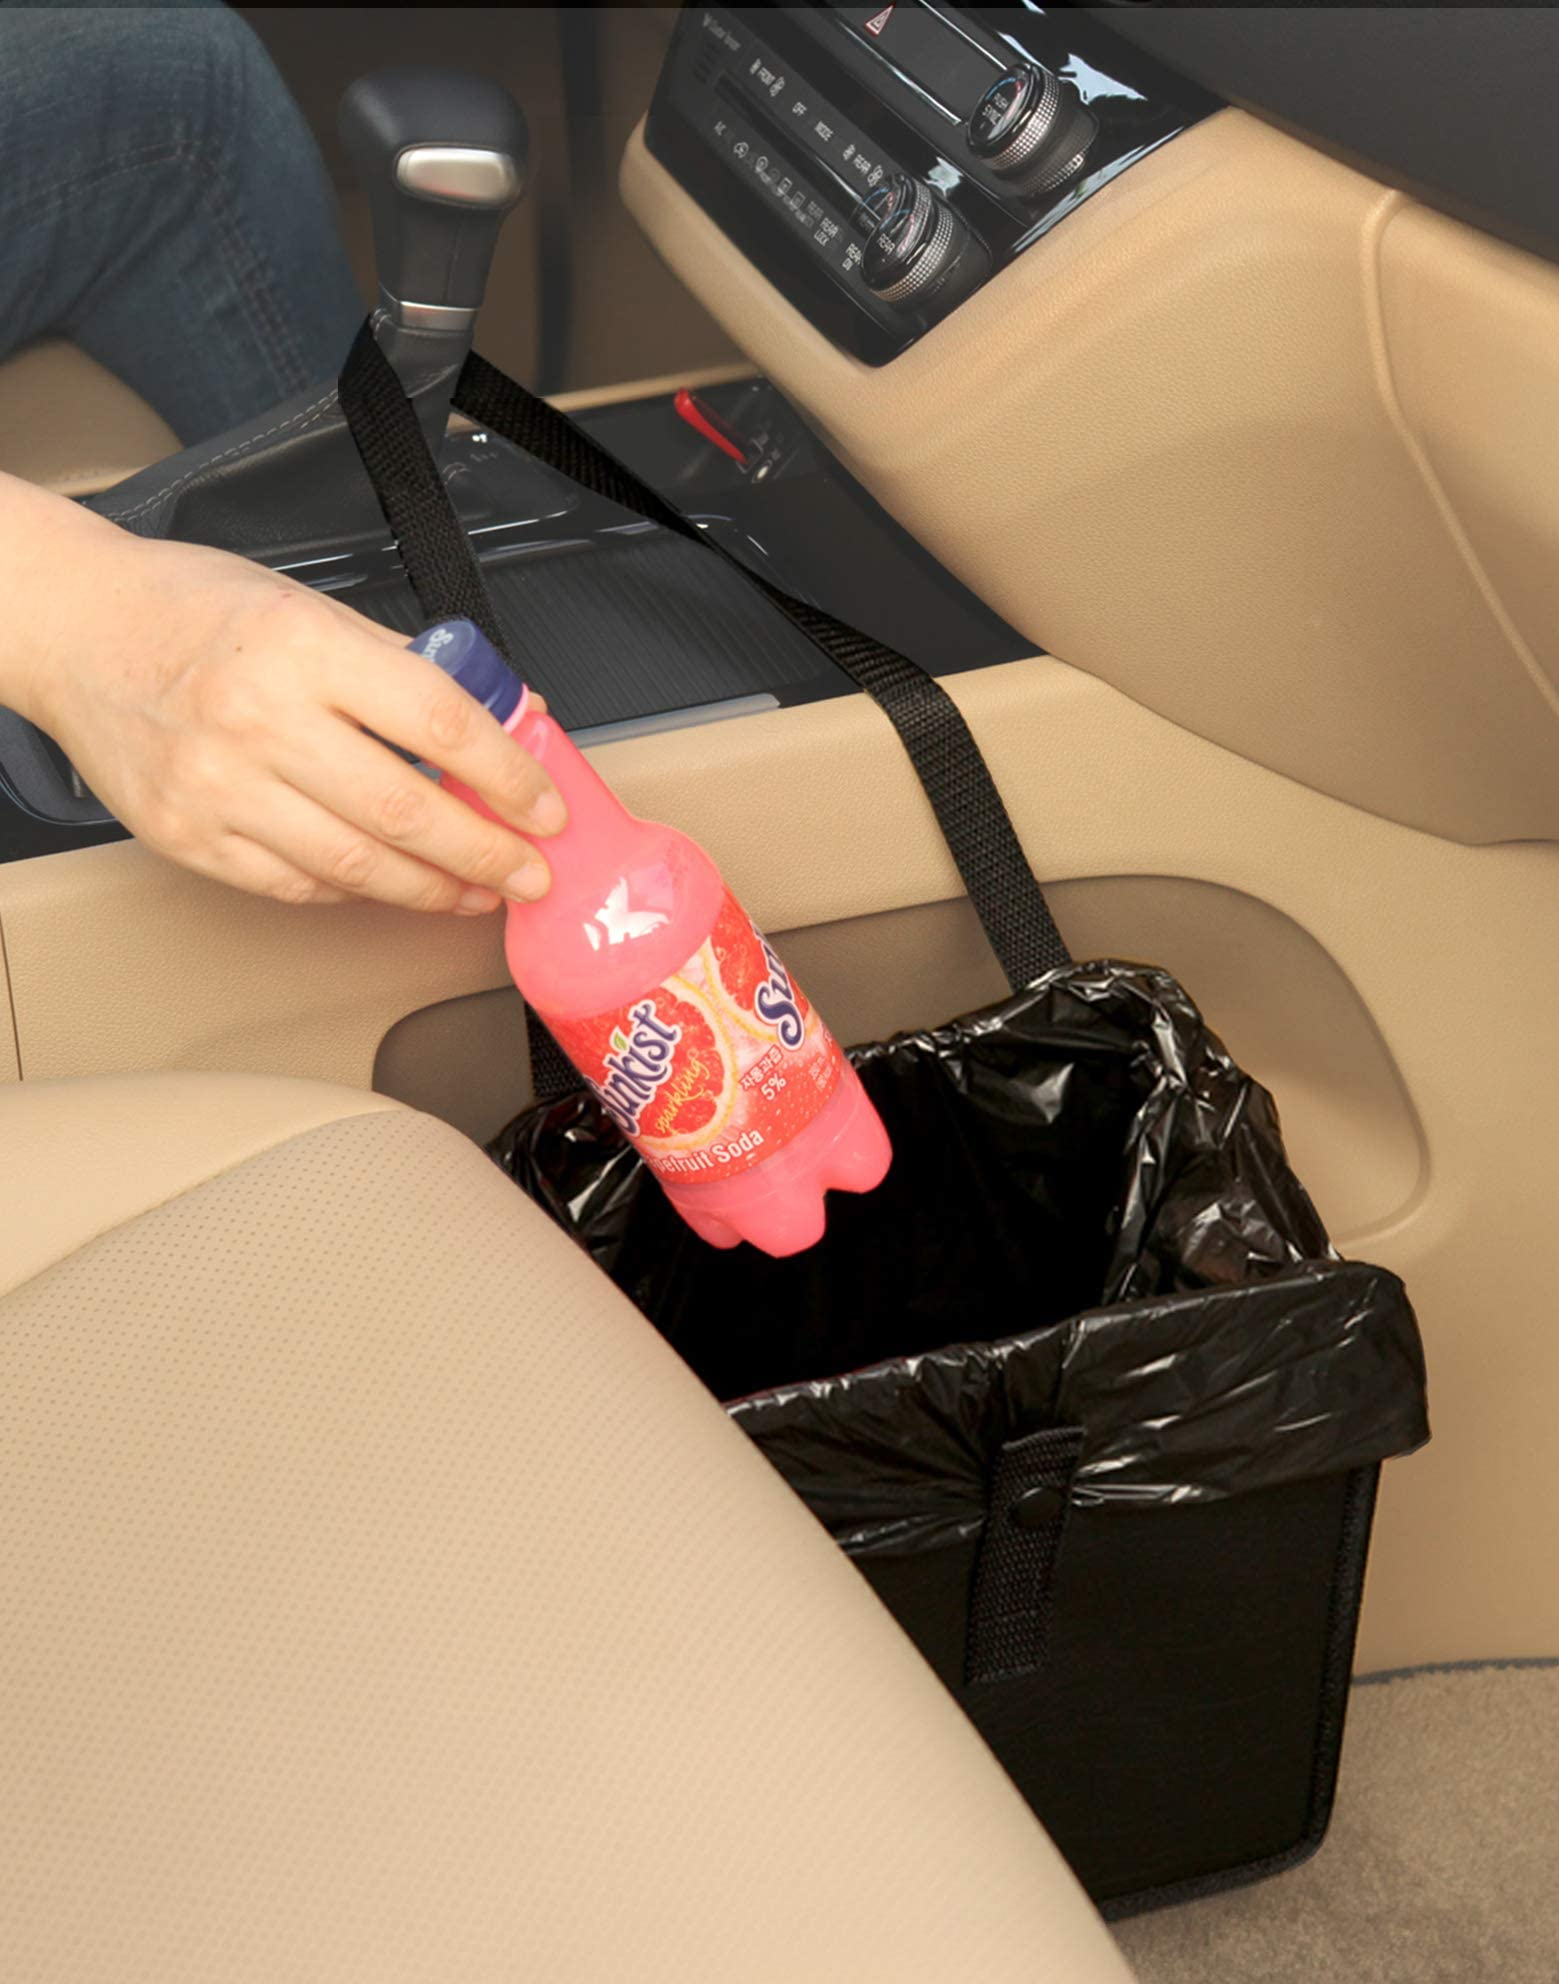 KMMOTORS Foldable Car Garbage Can Patented Car Waste Basket Comfortable Multifuntional Artificial Leather and Oxford Clothes Car Organizer Car Trash Can (Jopps_Medium 1pc)